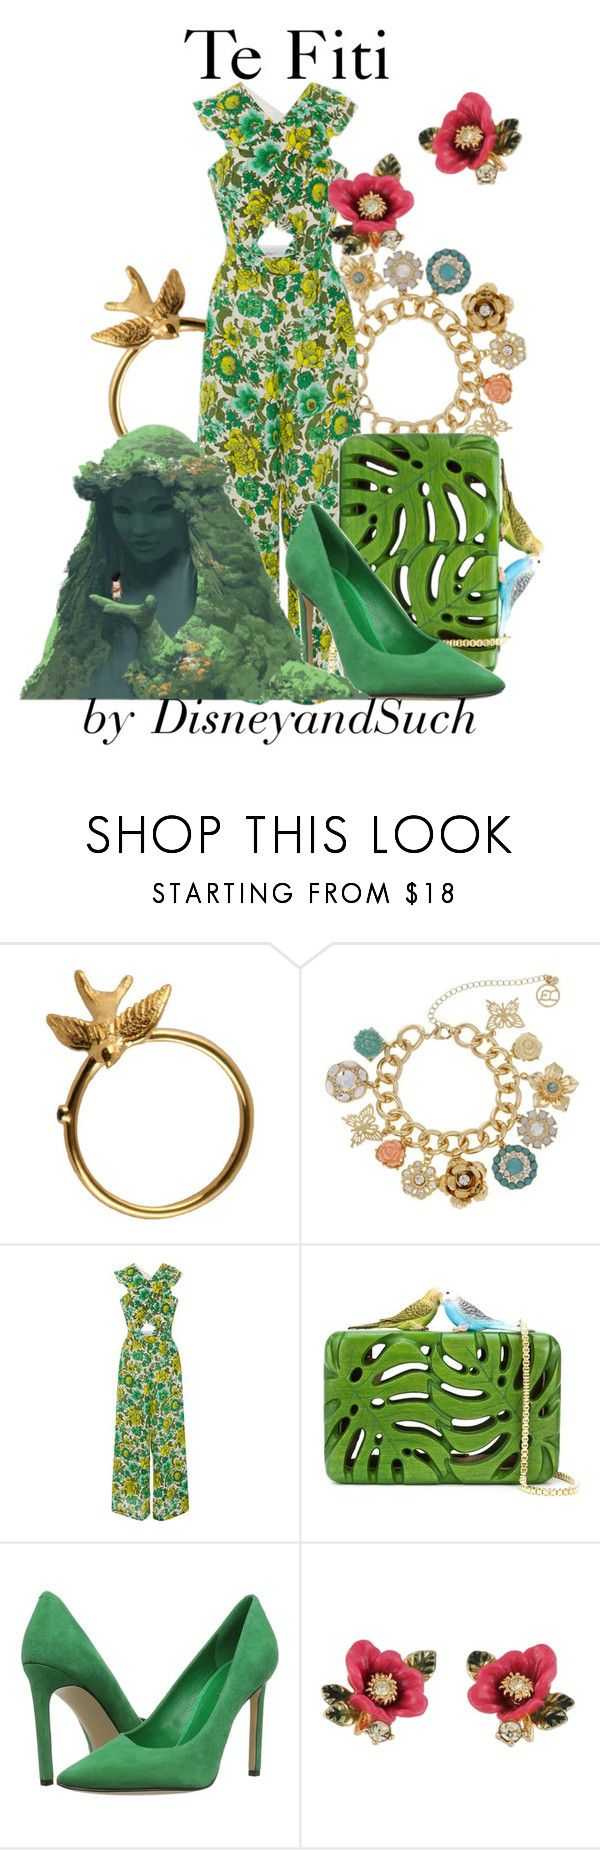 """Te Fiti"" by disneyandsuch ❤ liked on Polyvore featuring Roz Buehrlen, Erica Lyons, Alice McCall, Sarah's Bag, Nine West, Les Néréides, disney, disneybound, moana and WhereIsMySuperSuit"